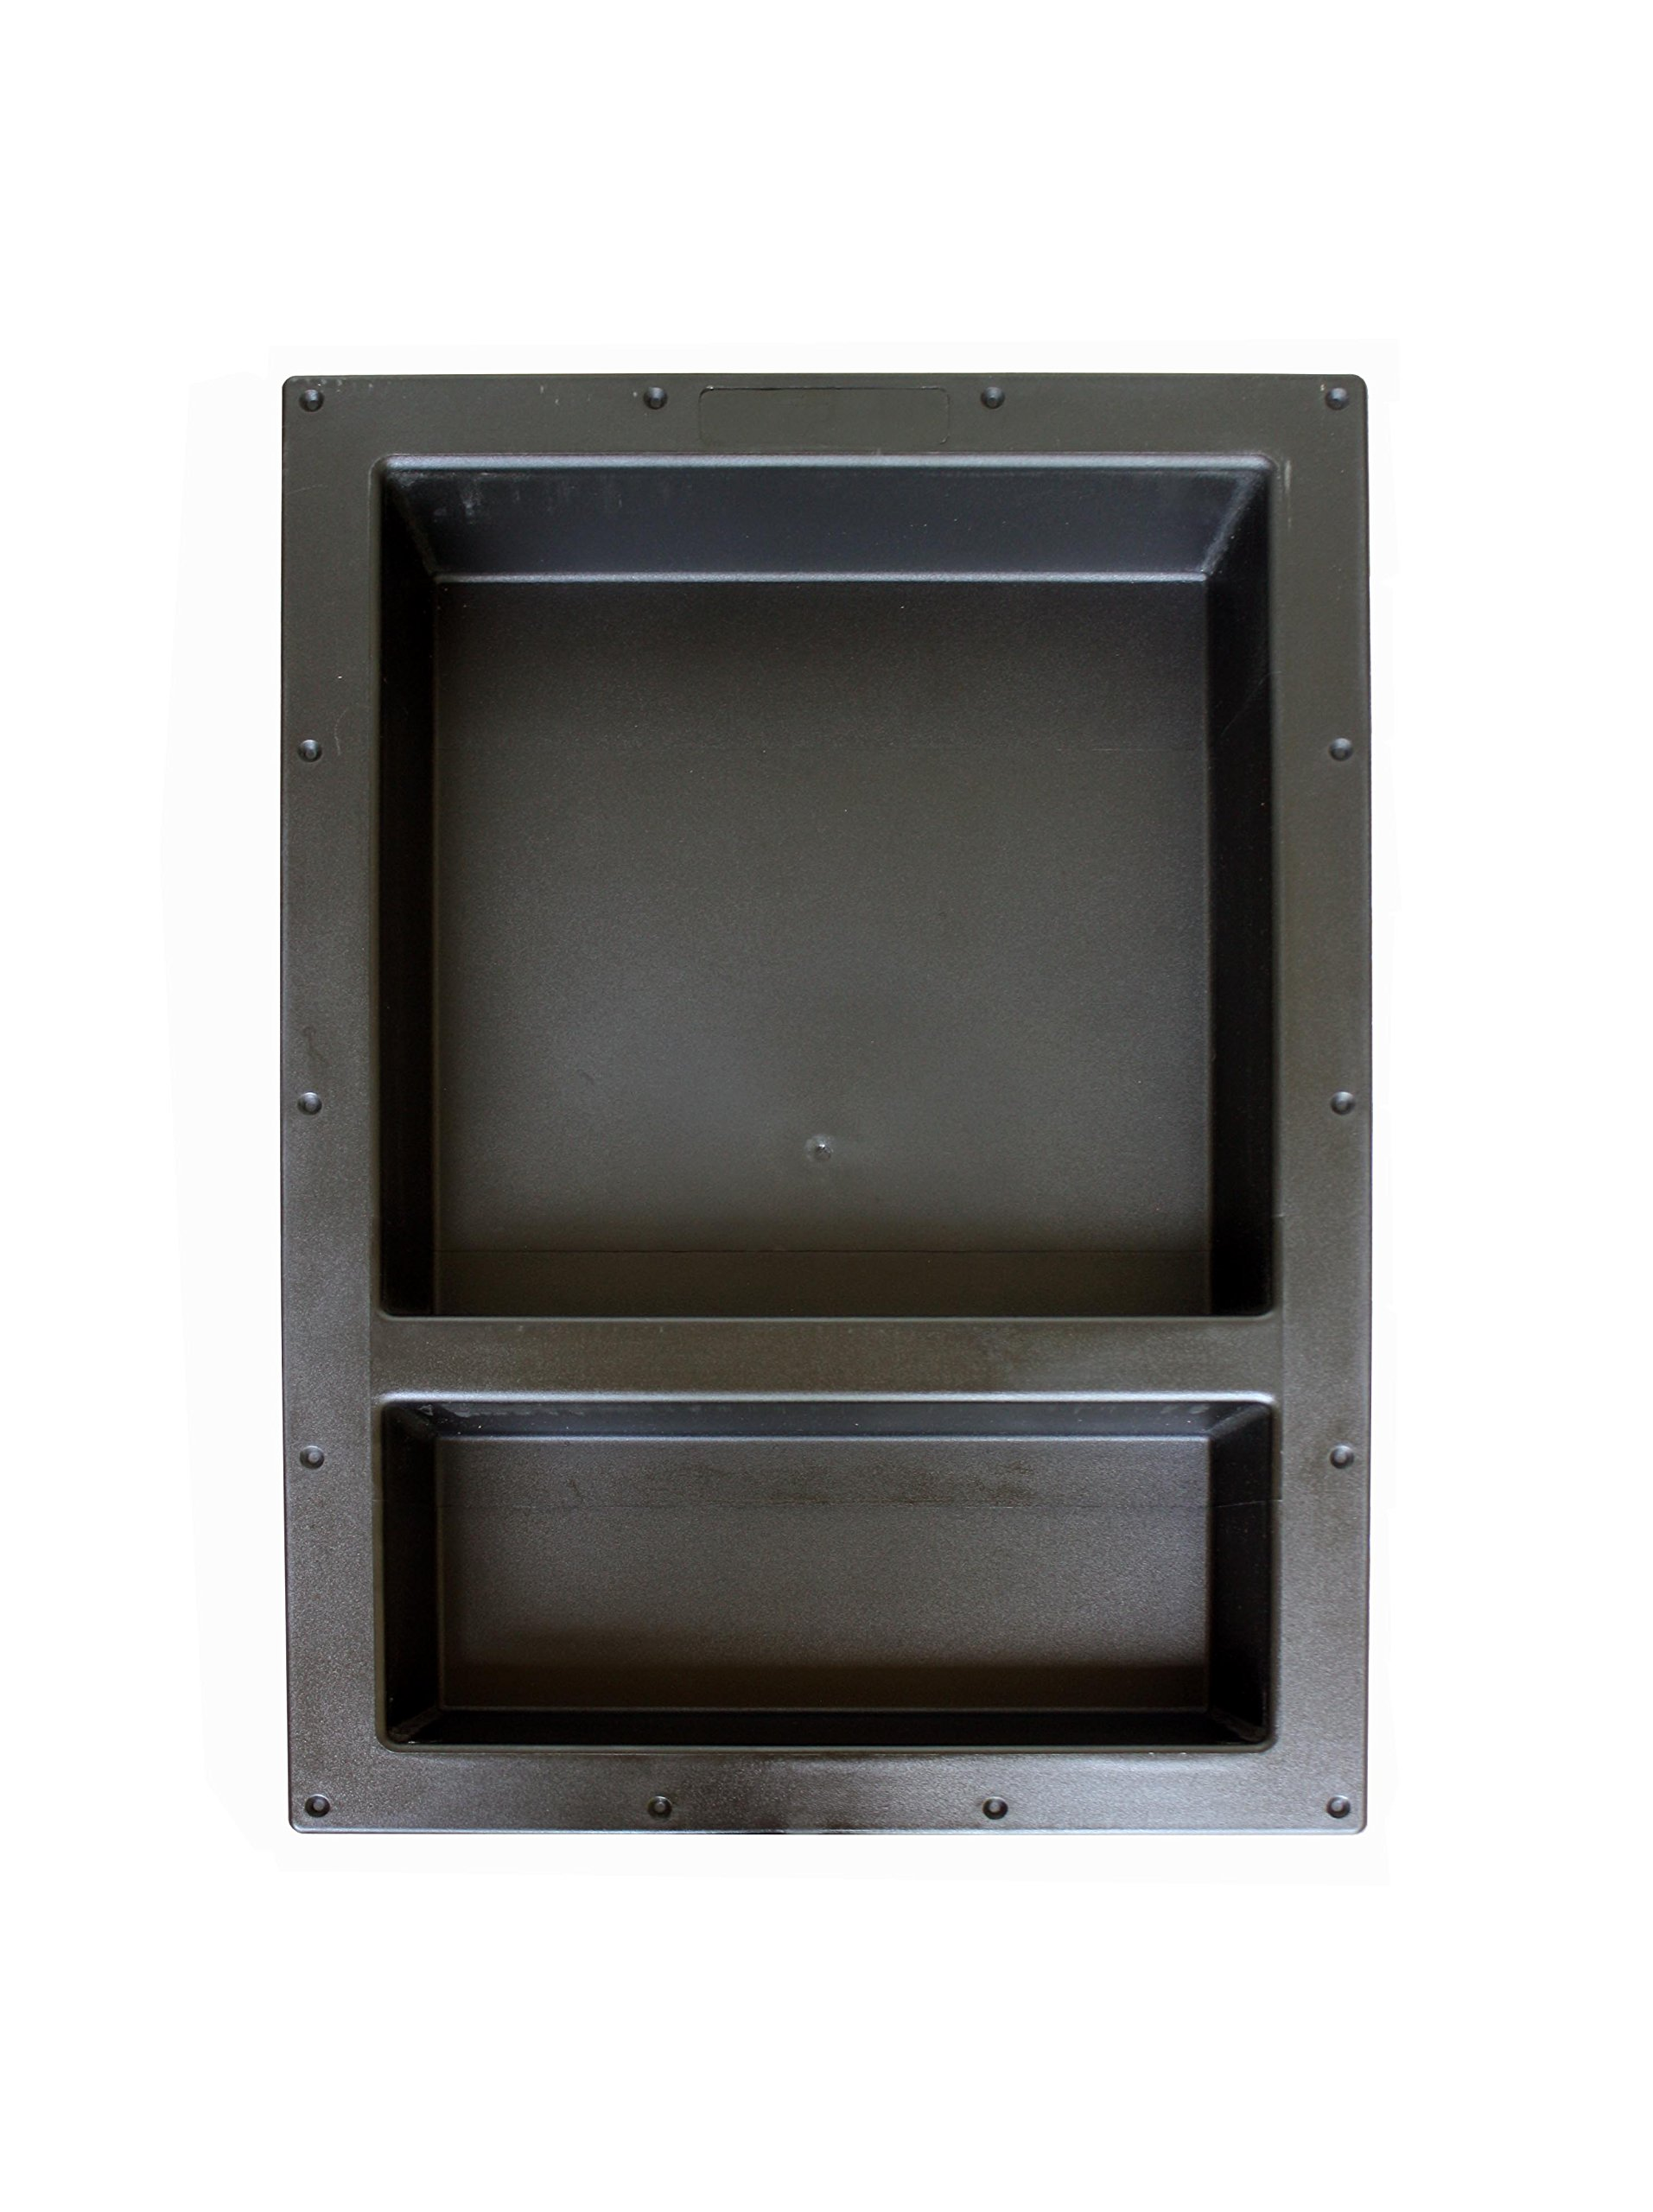 Large Double Recessed Shower Niche, Ready to Tile, 25'' x 17'' x 3.75'' by Novalinea